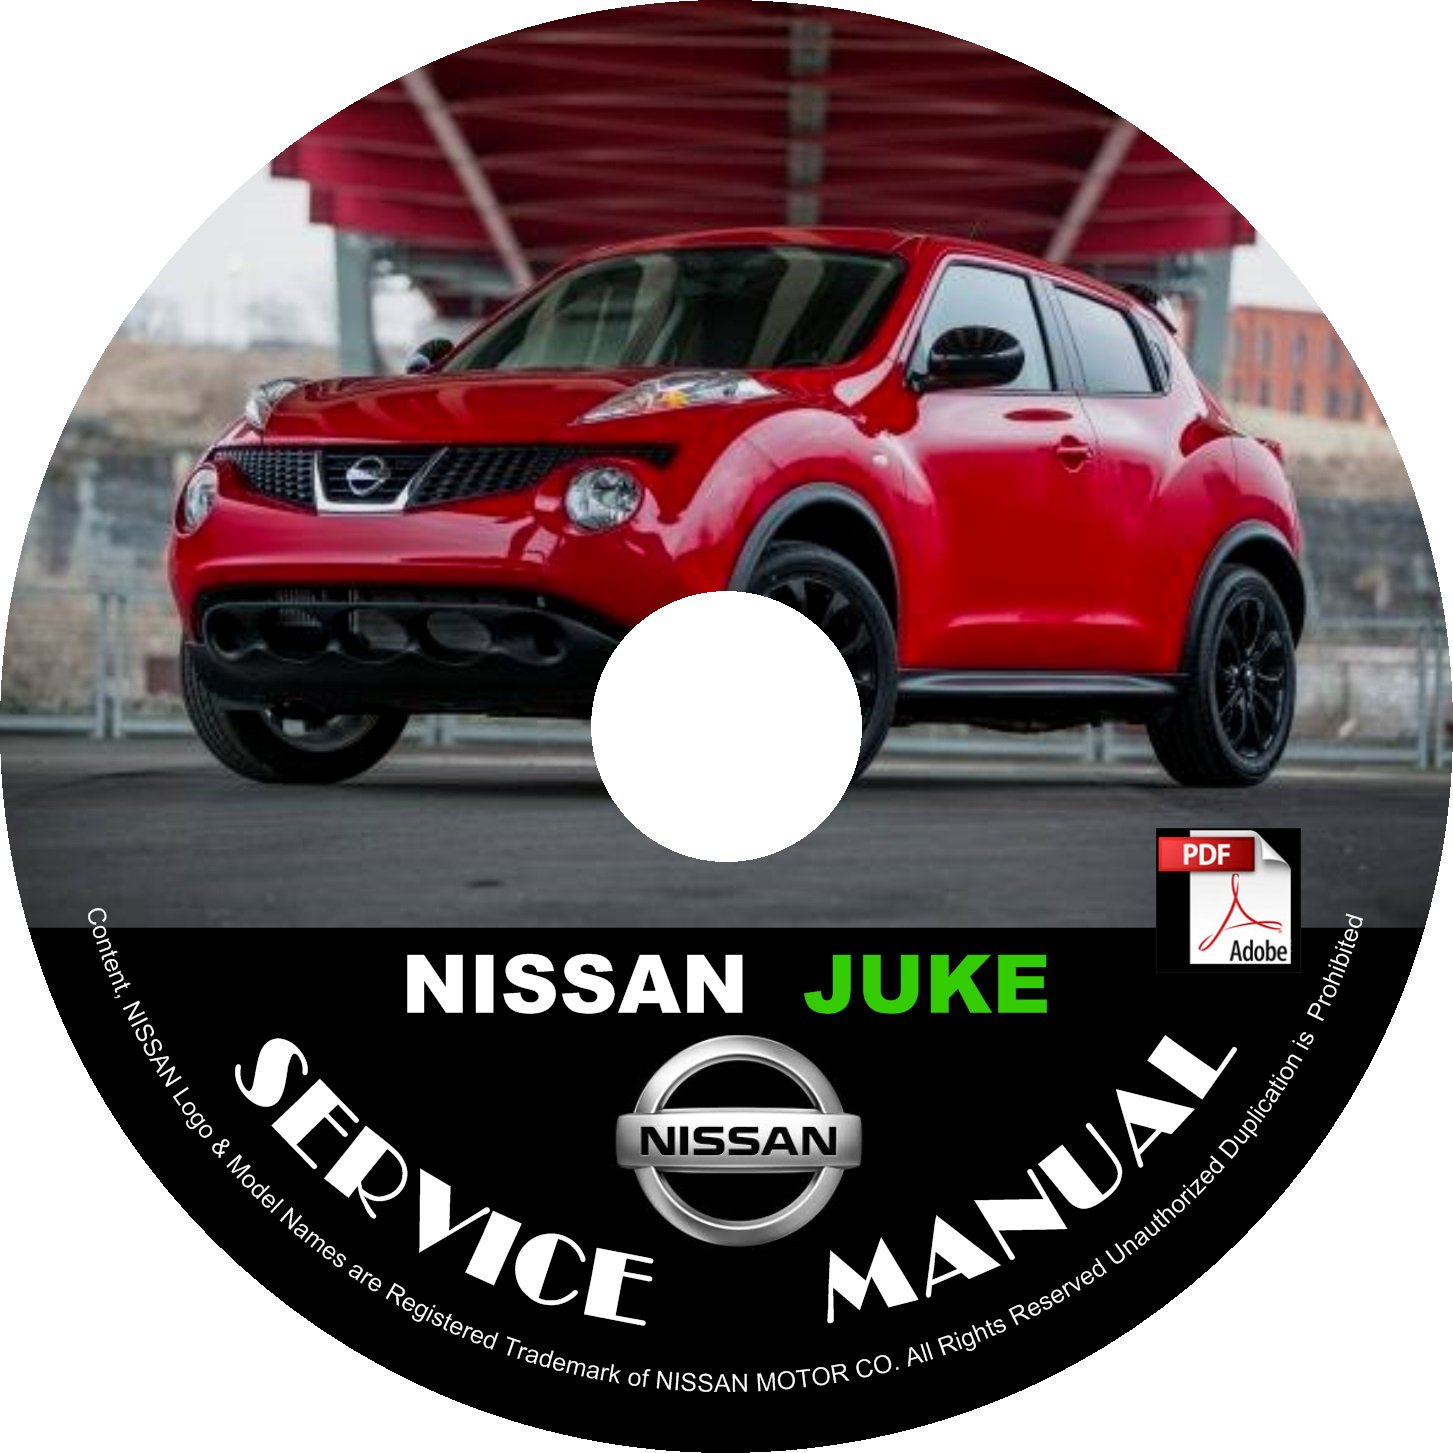 2015 Nissan Juke Service Repair Shop Manual on CD Fix Repair Rebuild '15 Workshop Guide